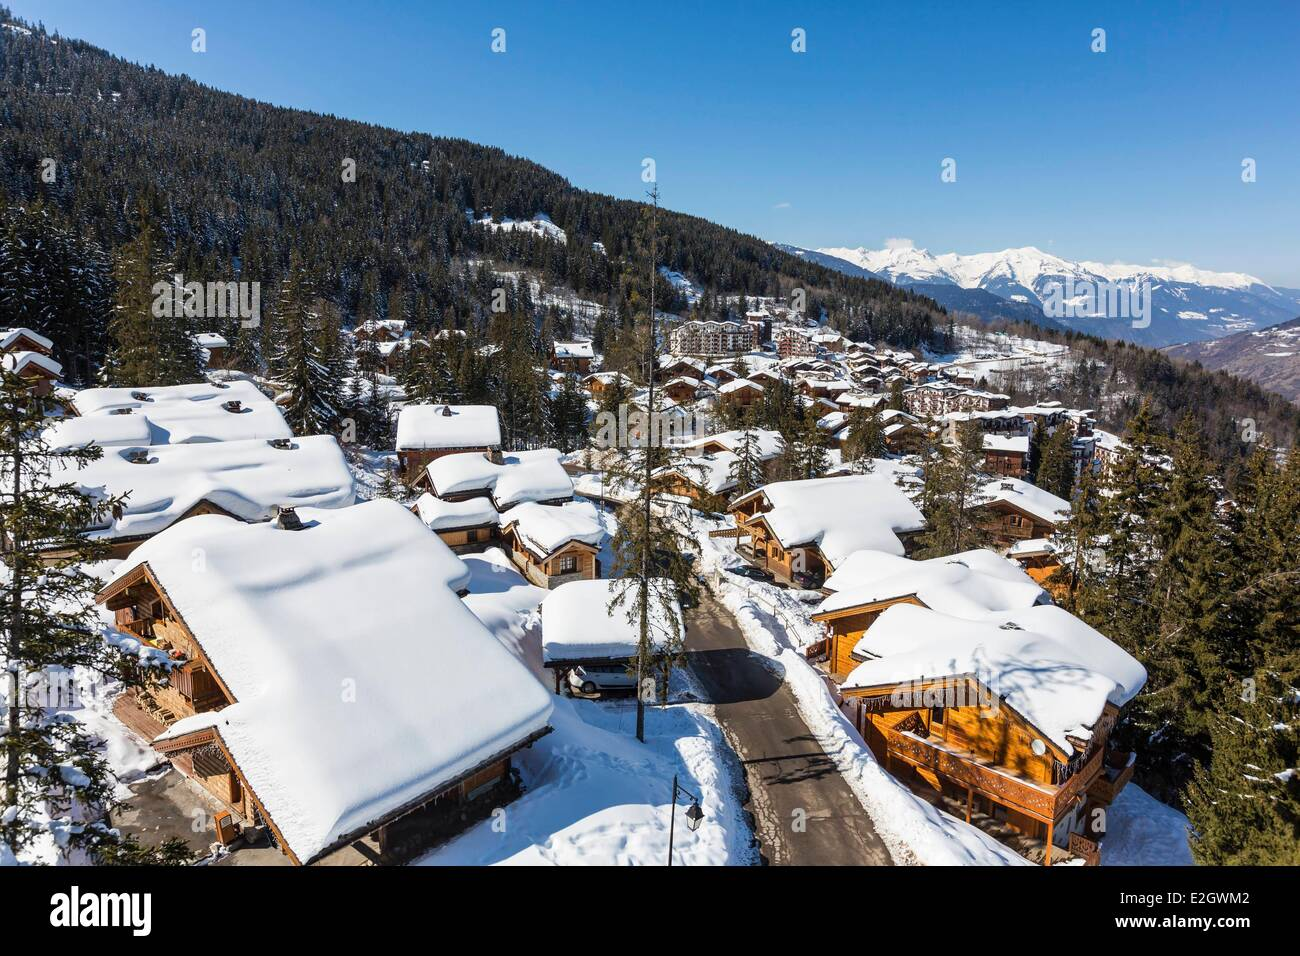 France Savoie La Tania is one of biggest stations of ski-village of France at heart of biggest ski slopes of world - Stock Image